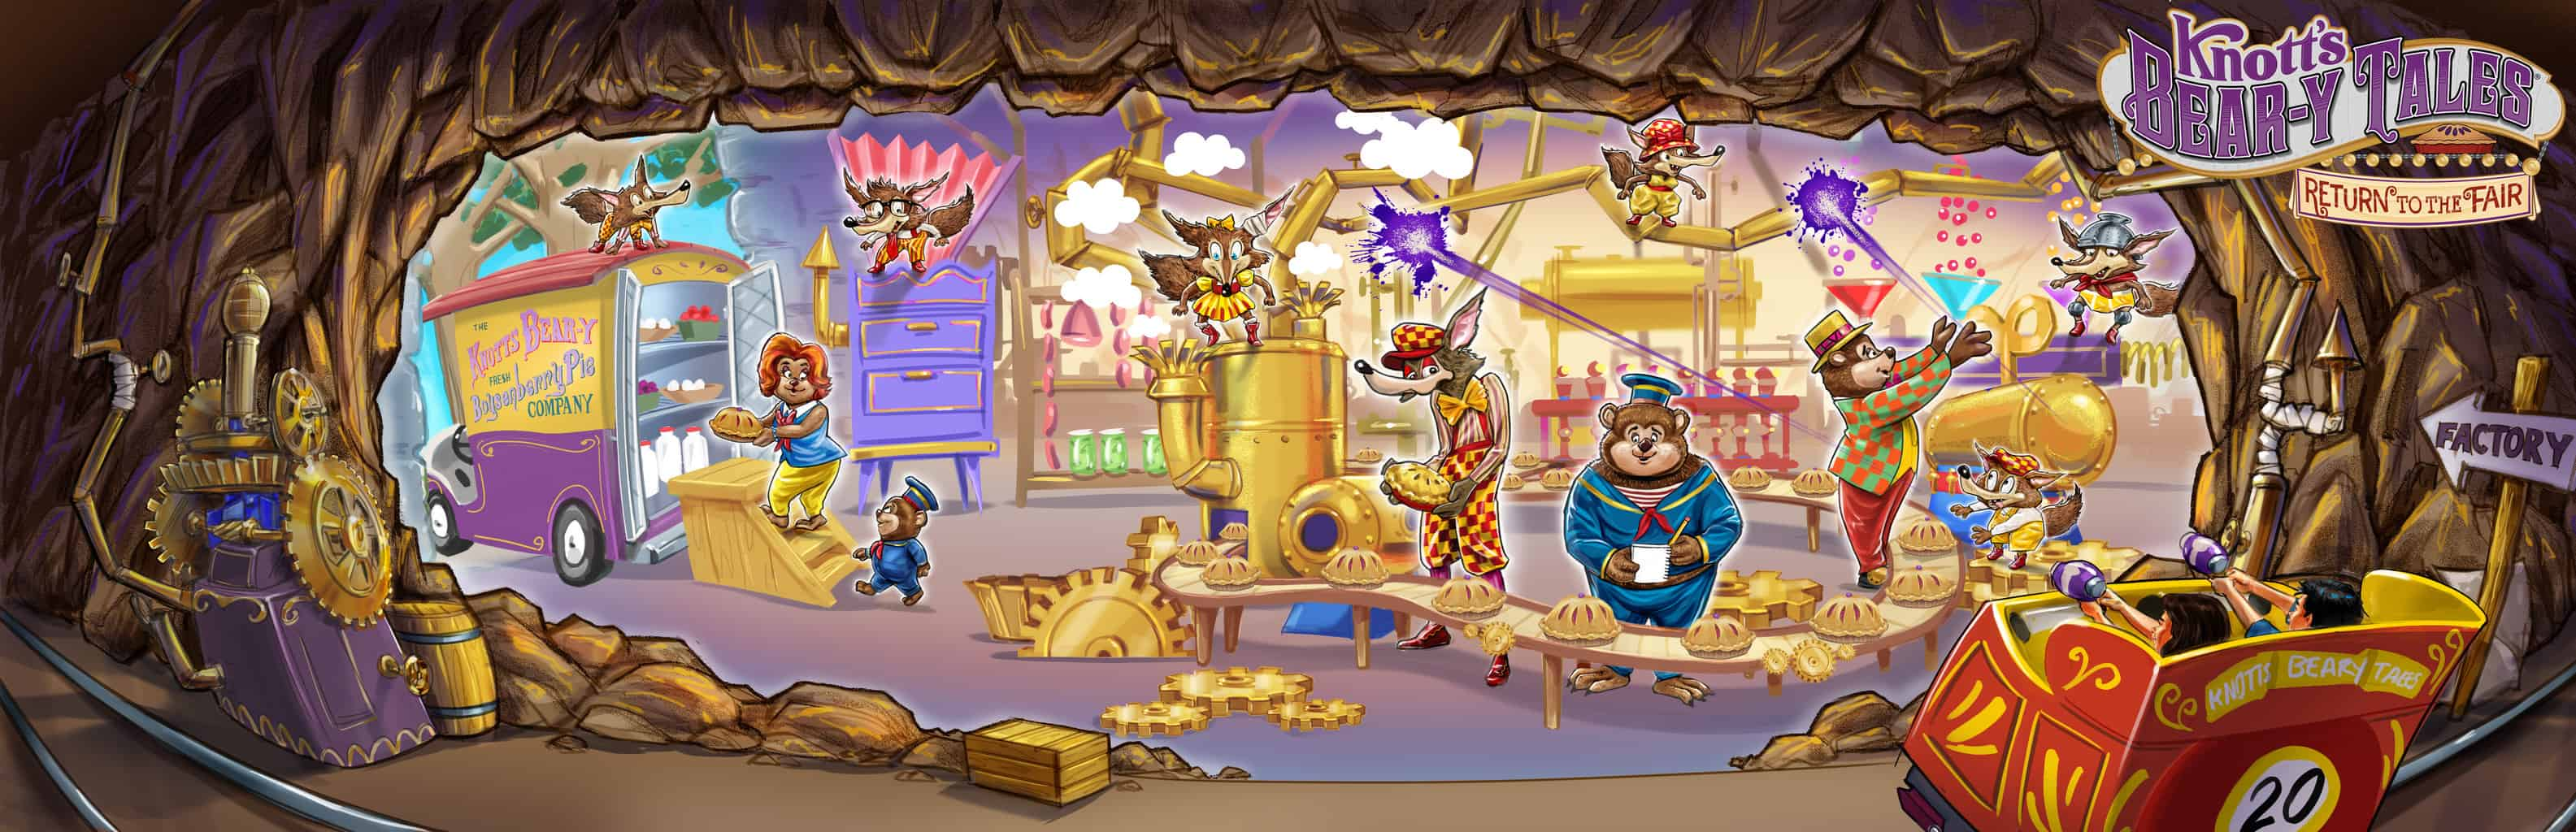 Do you love theme park rides? Check out the all new Knott'sBear-y Tales, an all-new 4-D interactive dark ride coming to Knott's Berry Farm in summer 2020.